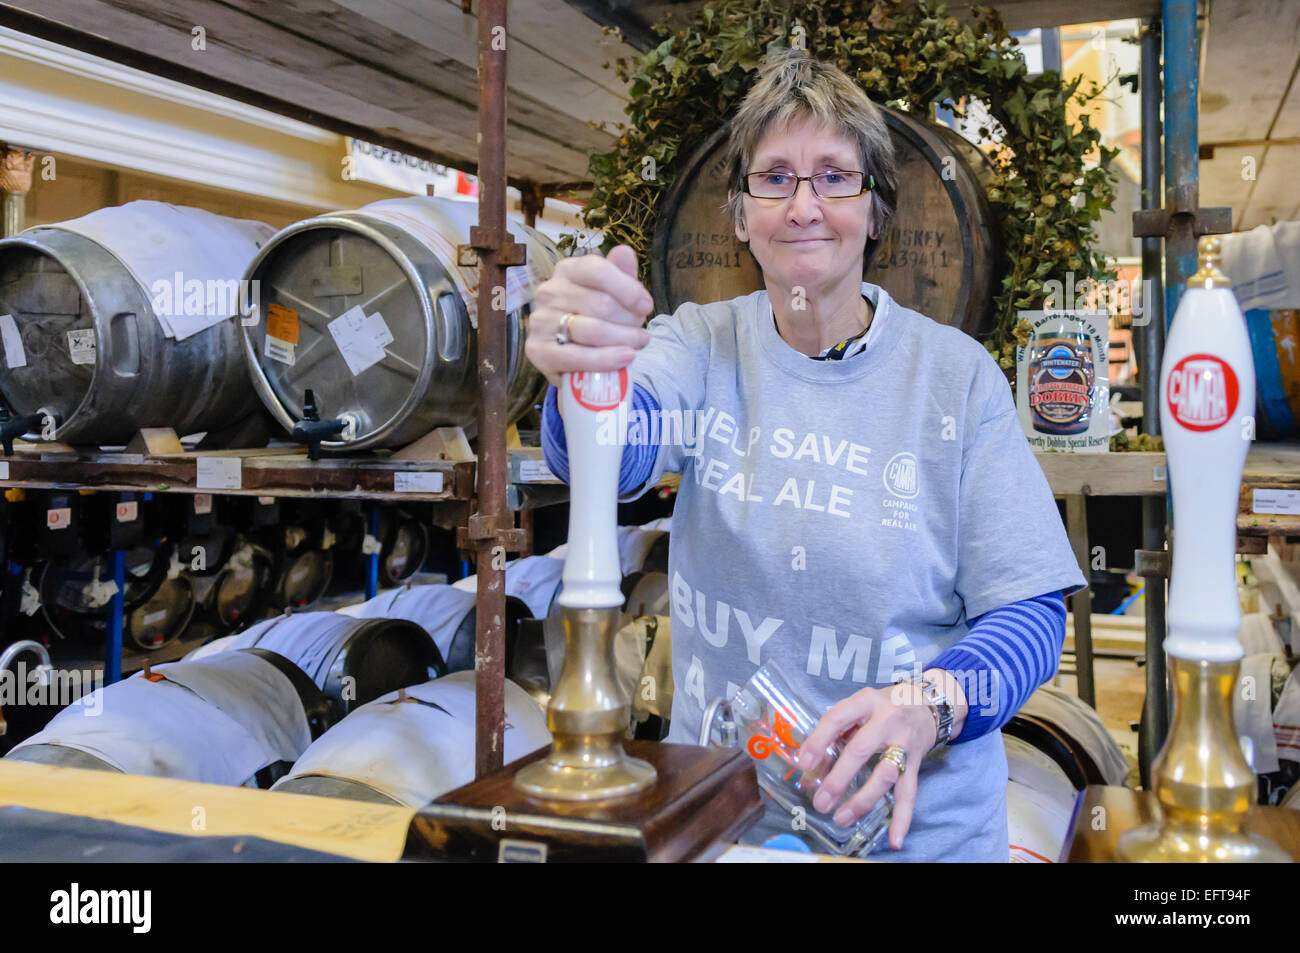 A woman pulls a pint of beer at a CAMRA real ale festival. - Stock Image